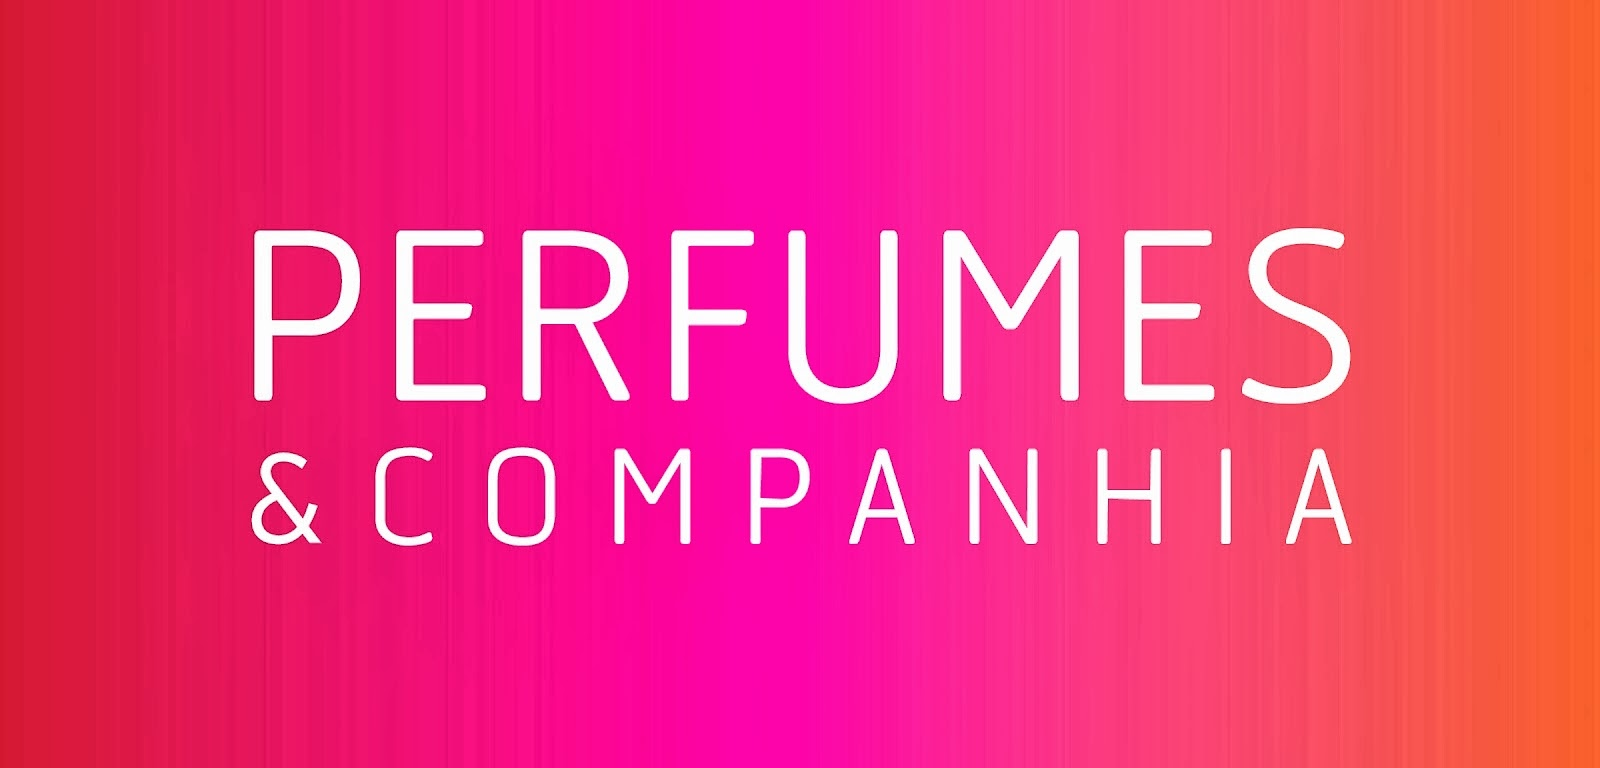 https://www.facebook.com/perfumesecompanhia